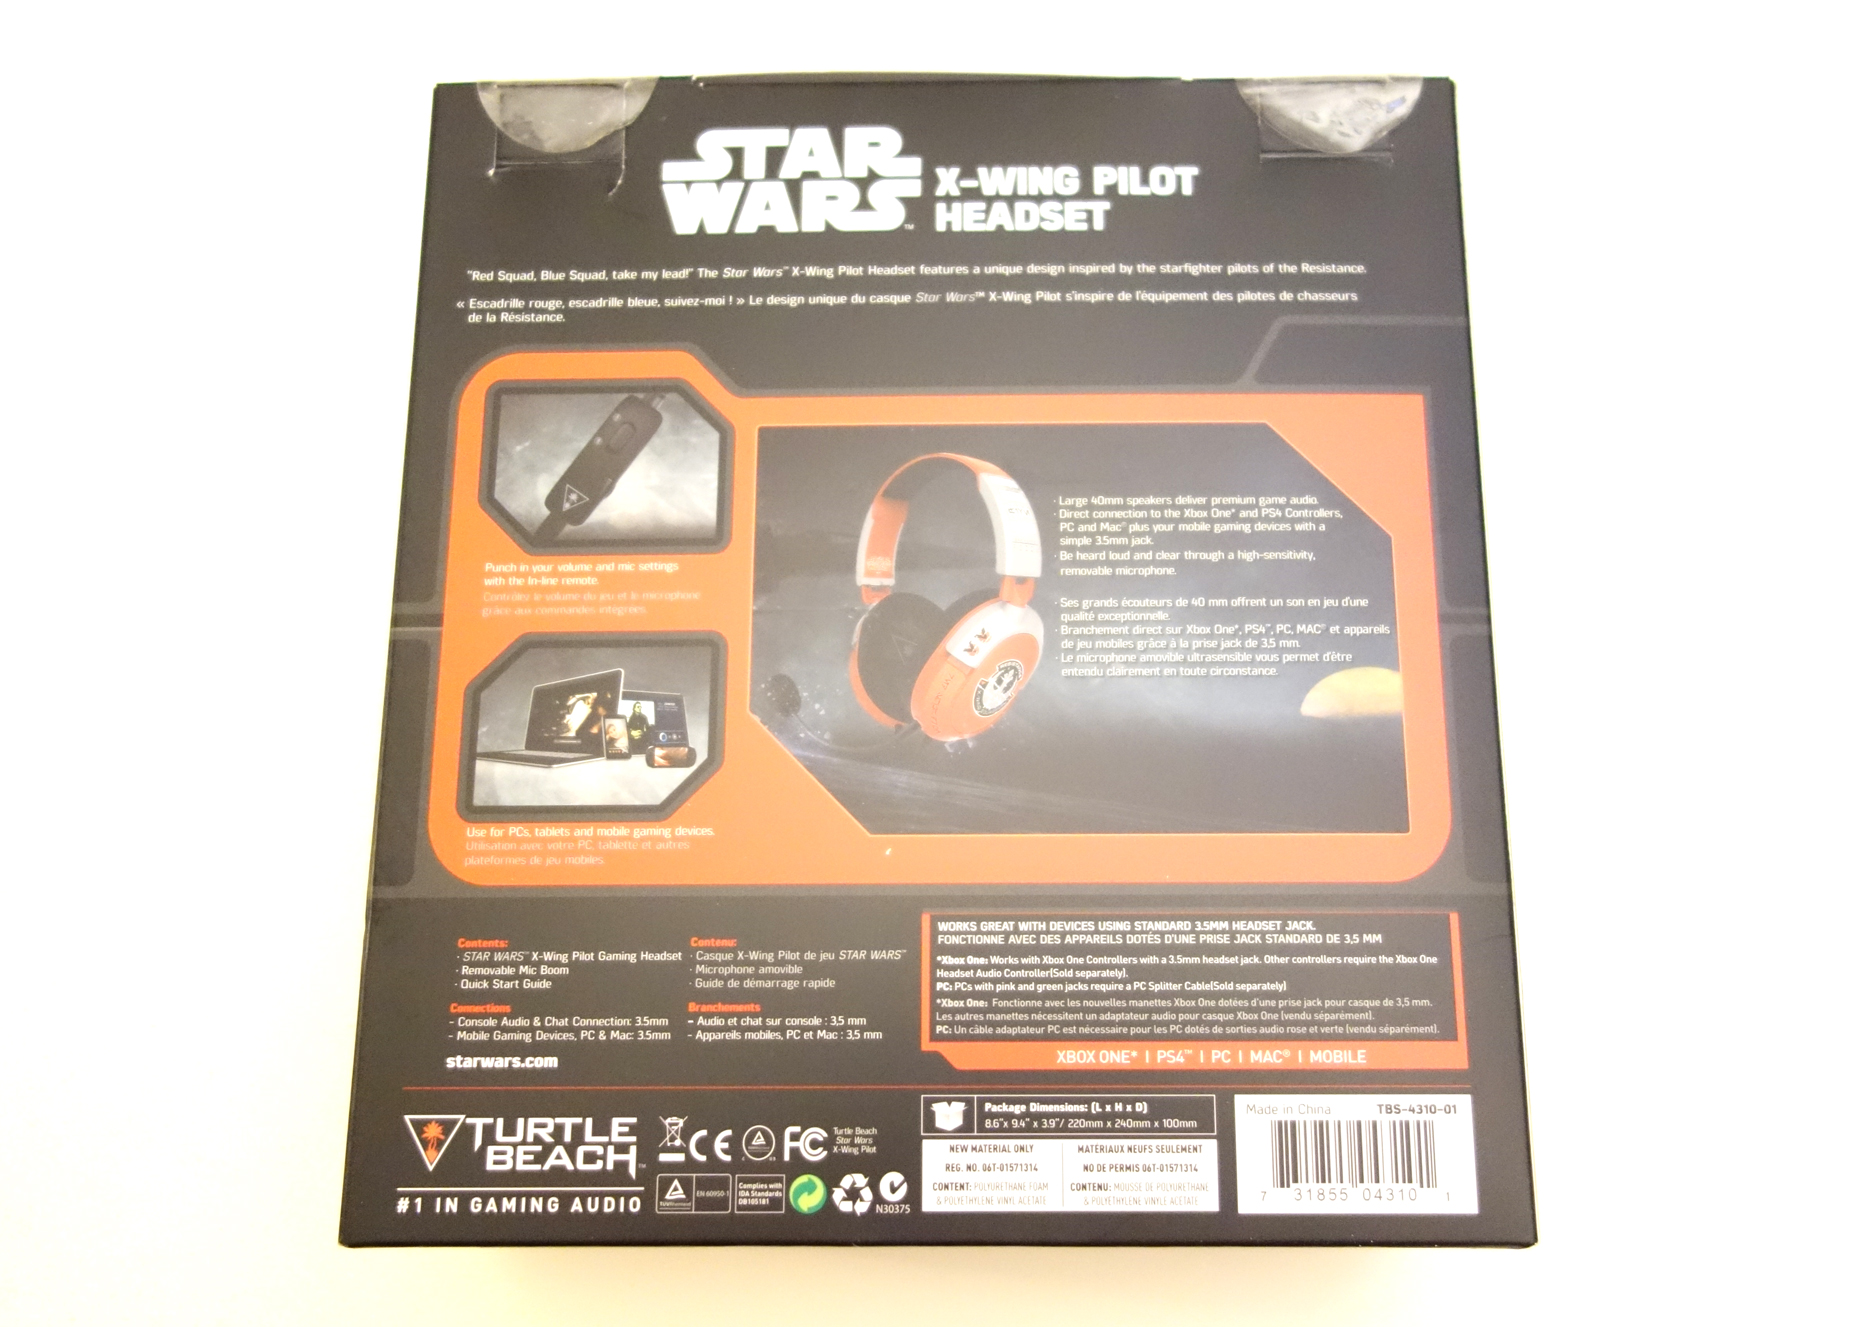 Turtle Beach Star Wars X-Wing Pilot Gaming Headset review box back